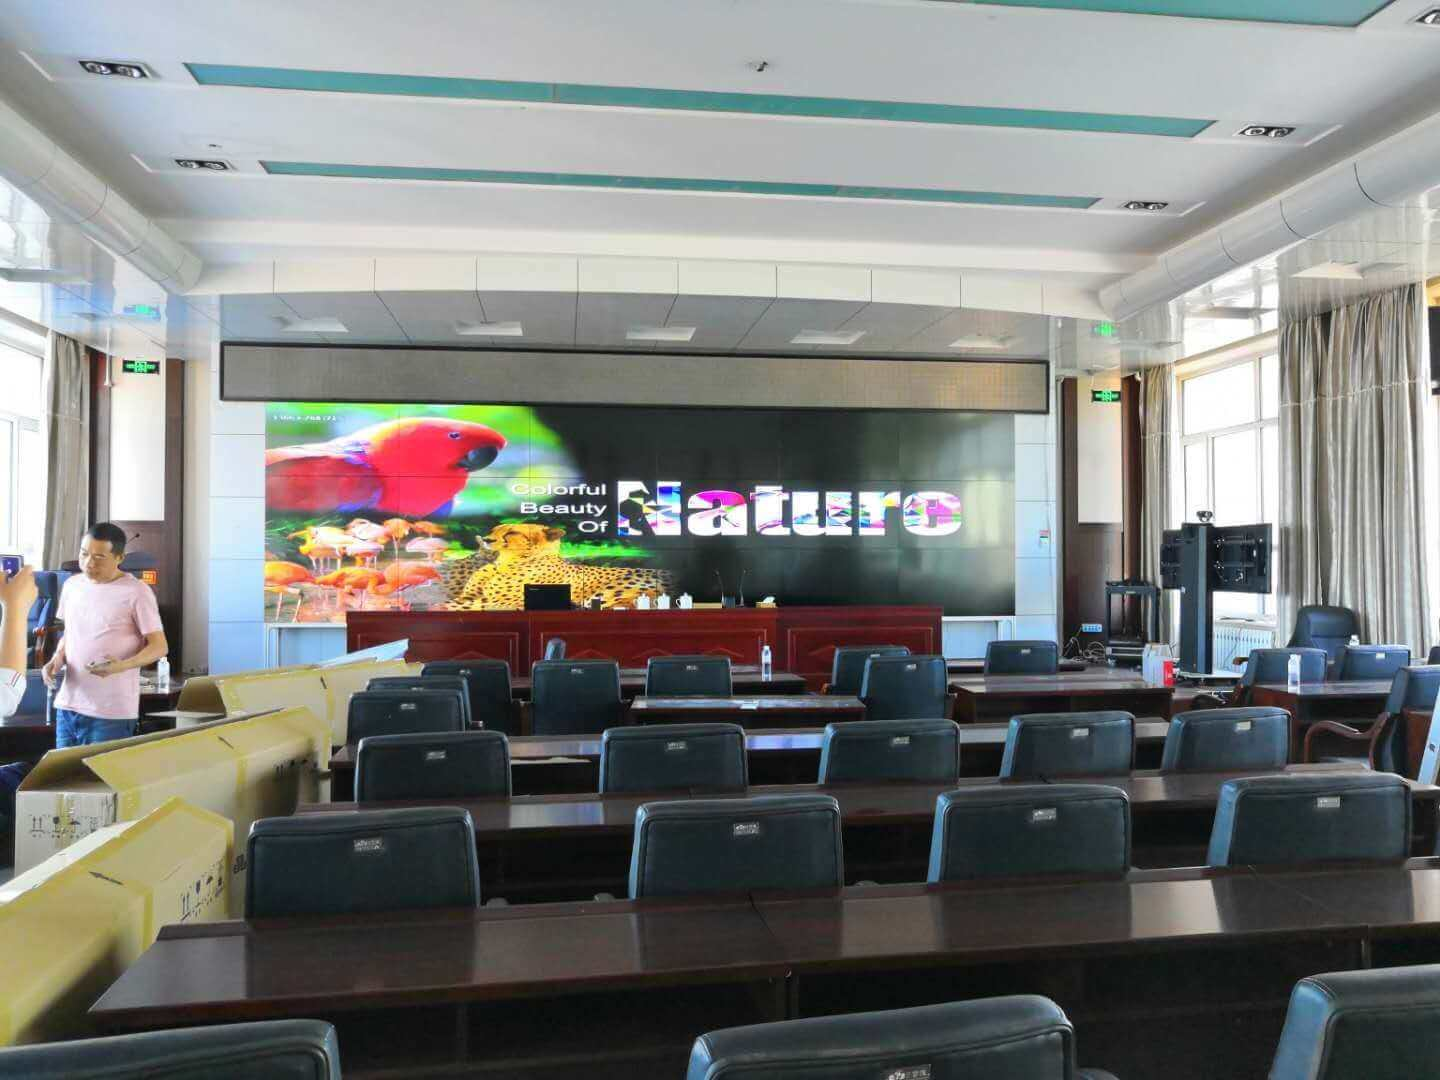 Video wall in meeting room